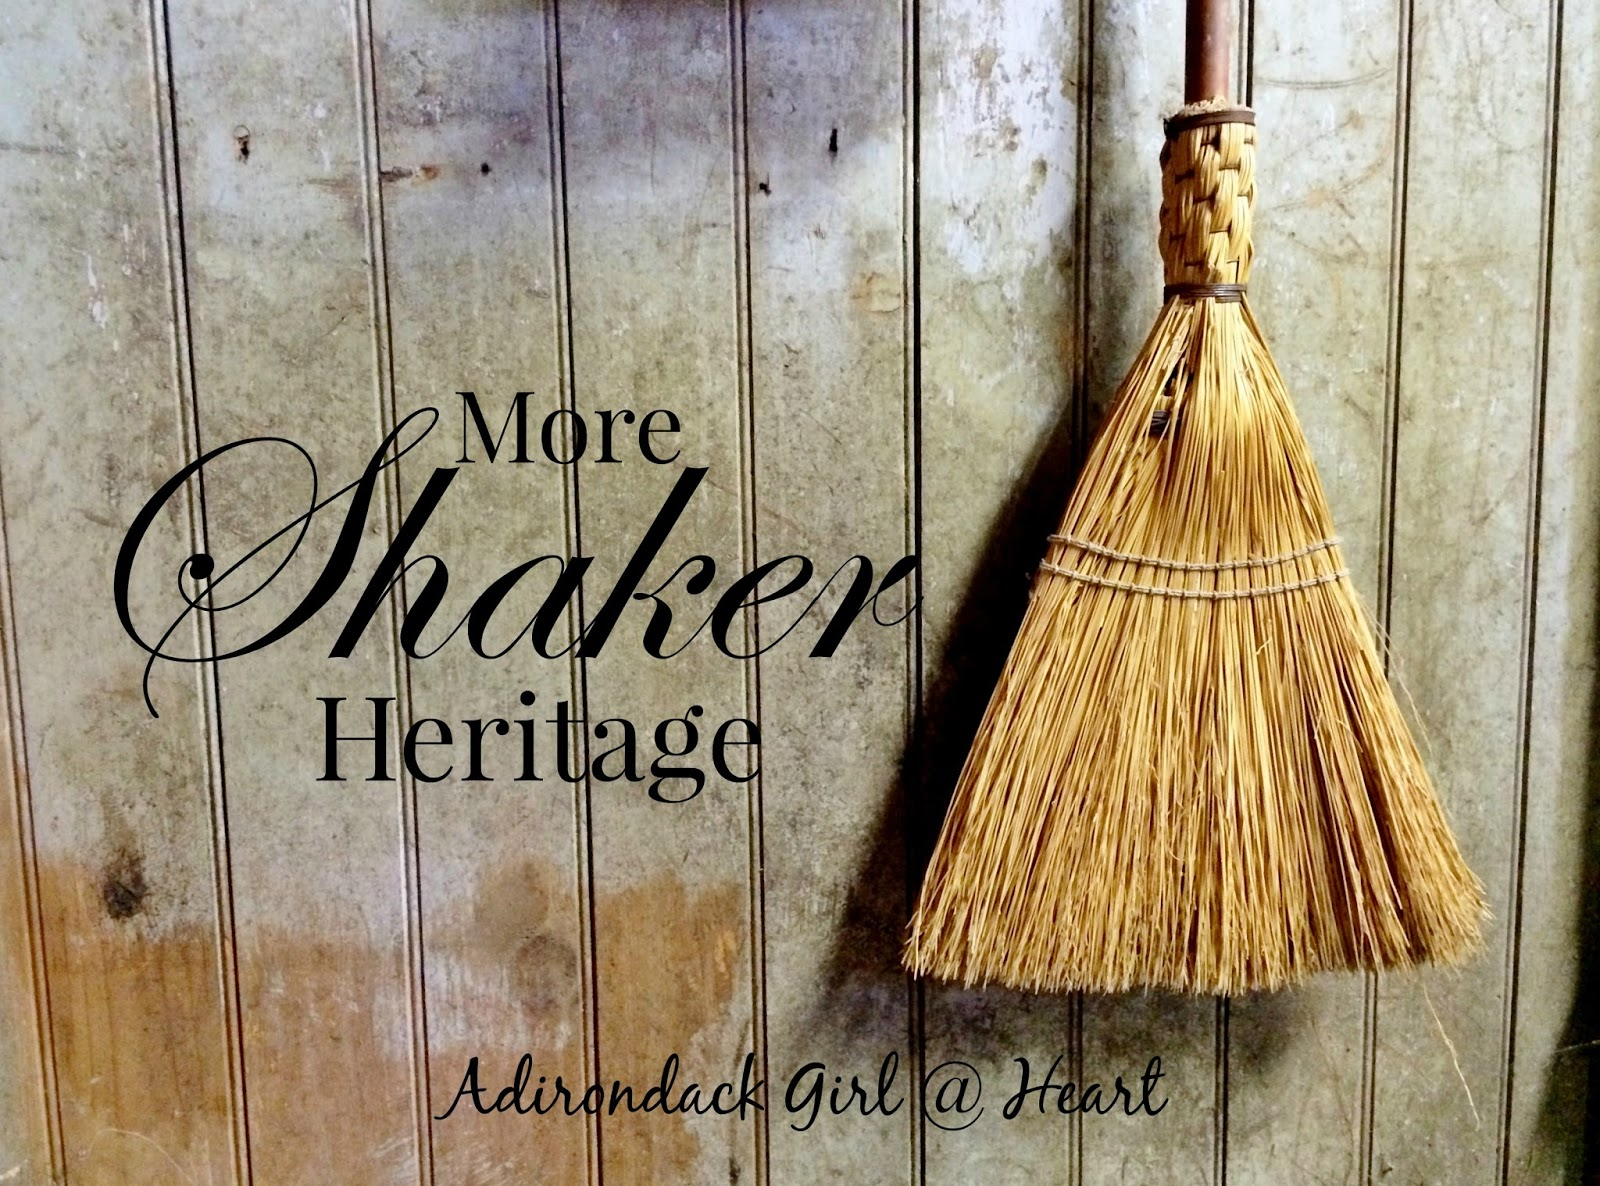 Back to the Shaker Heritage Society